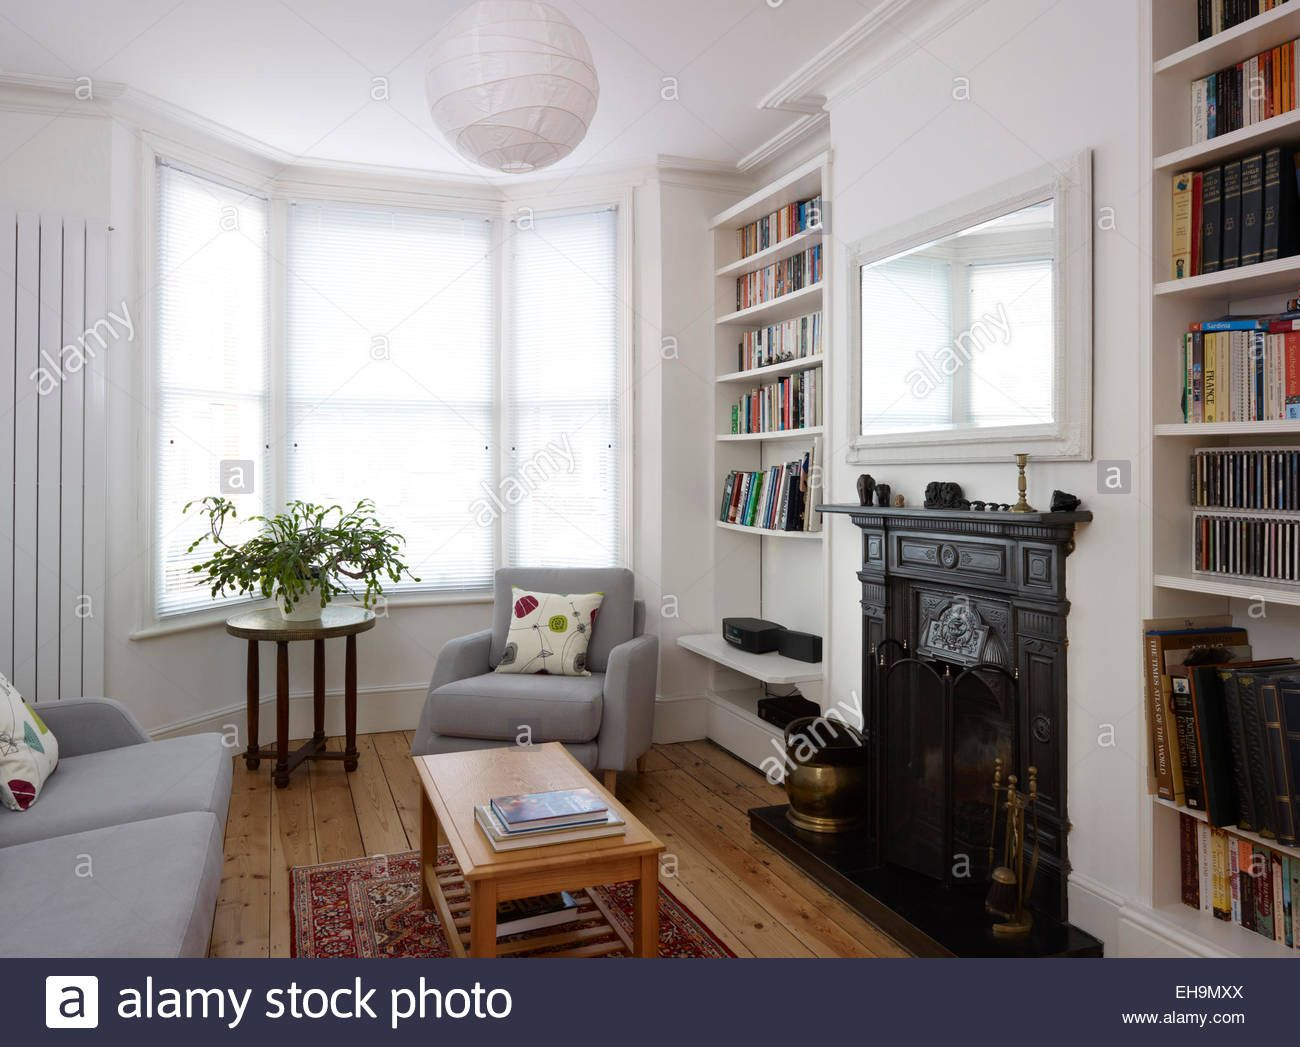 Image Result For Living Room With Bay Window And Fireplace